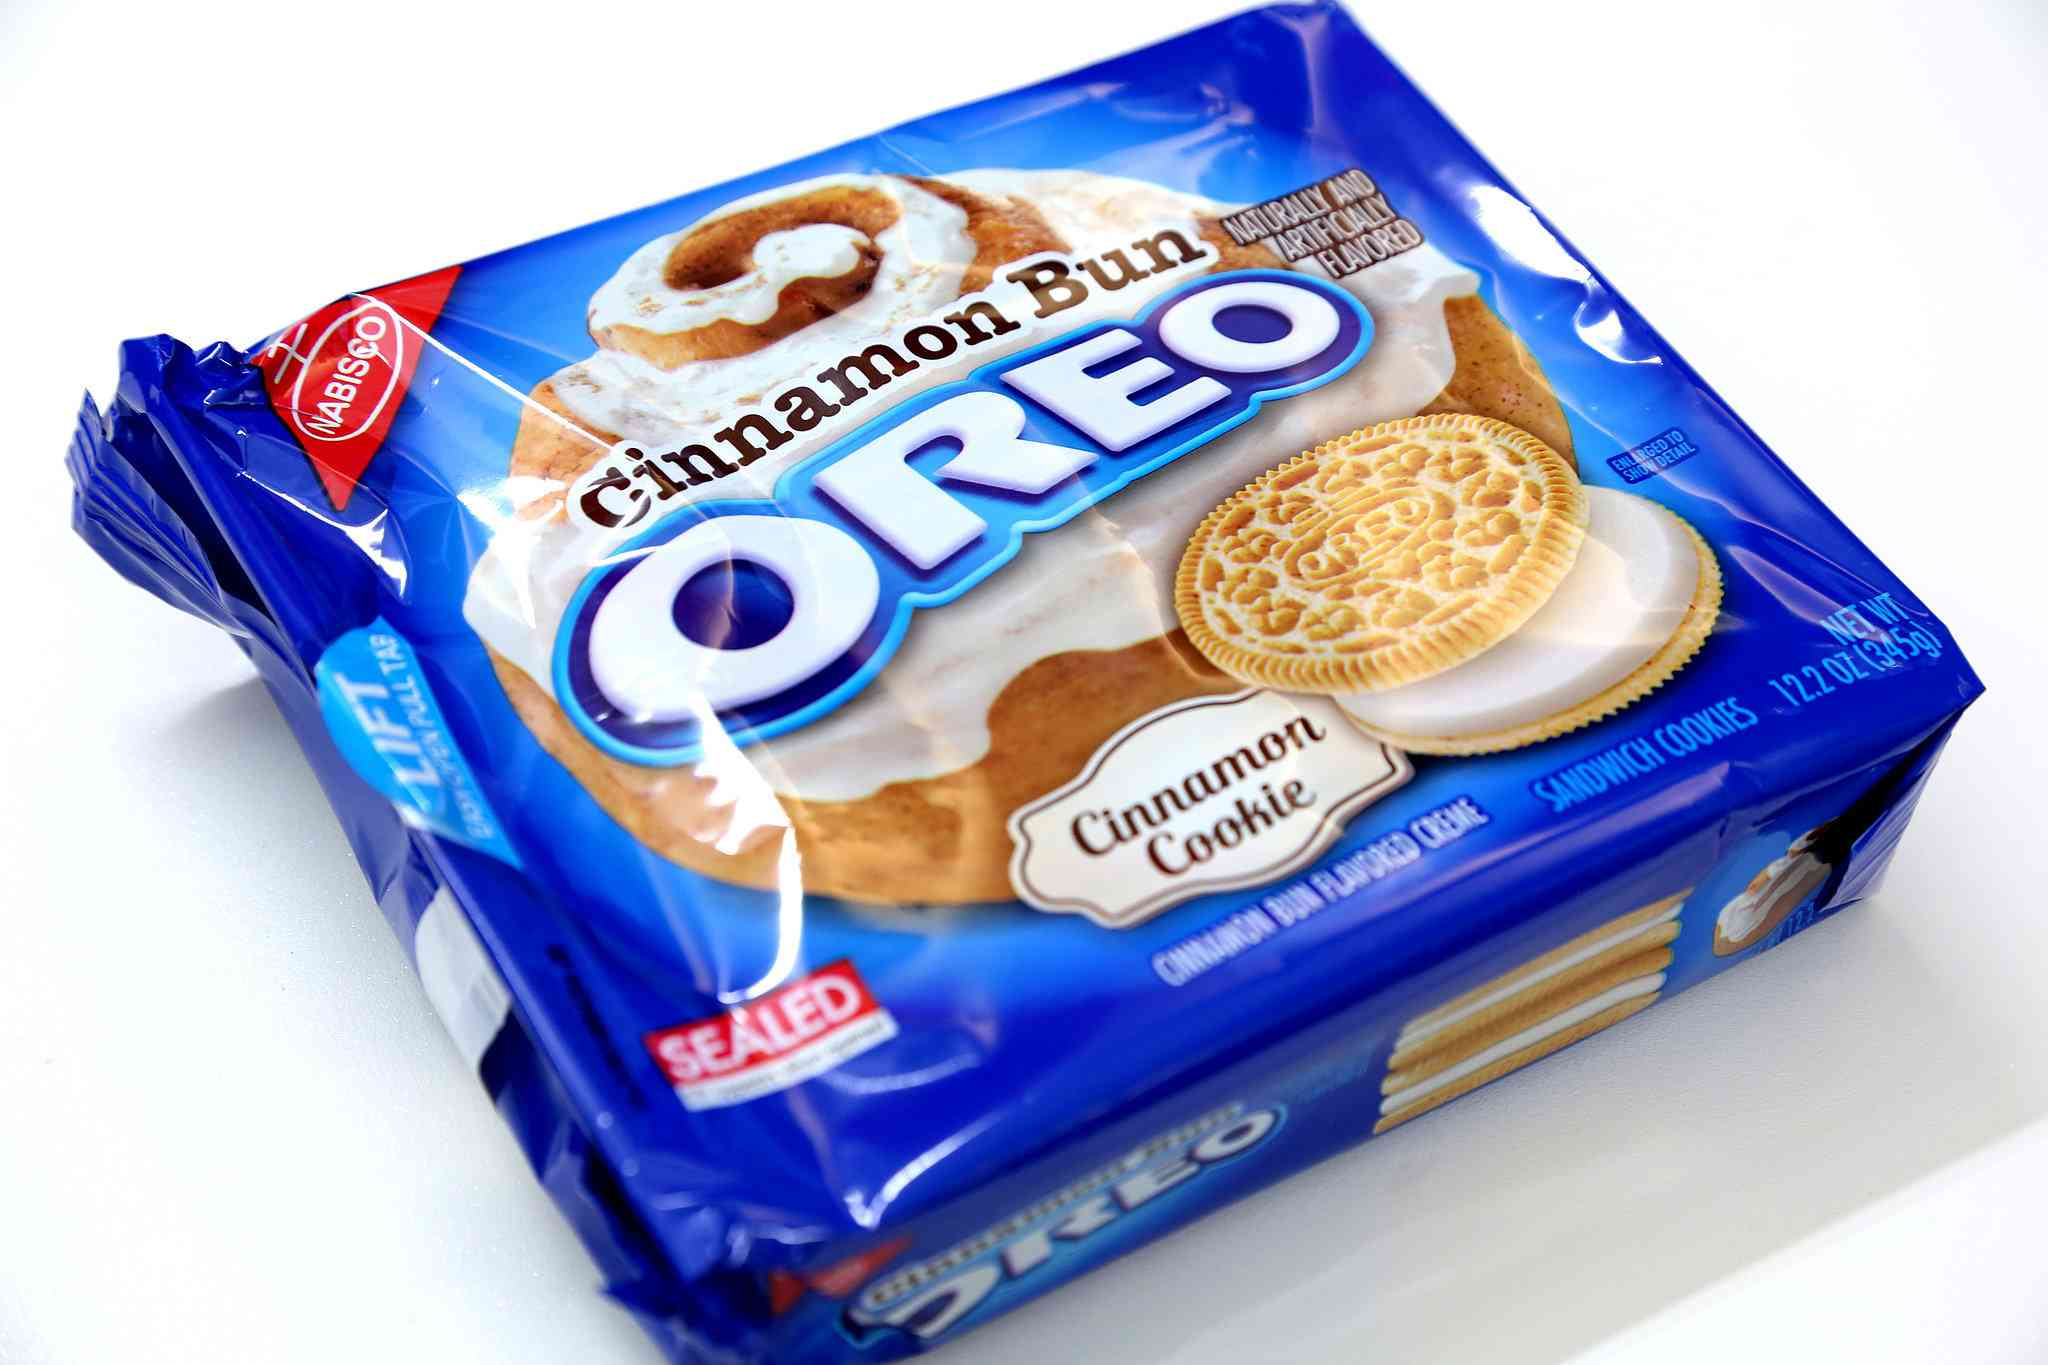 Oreo Cinnamon Bun Flavored Sandwich Cookies